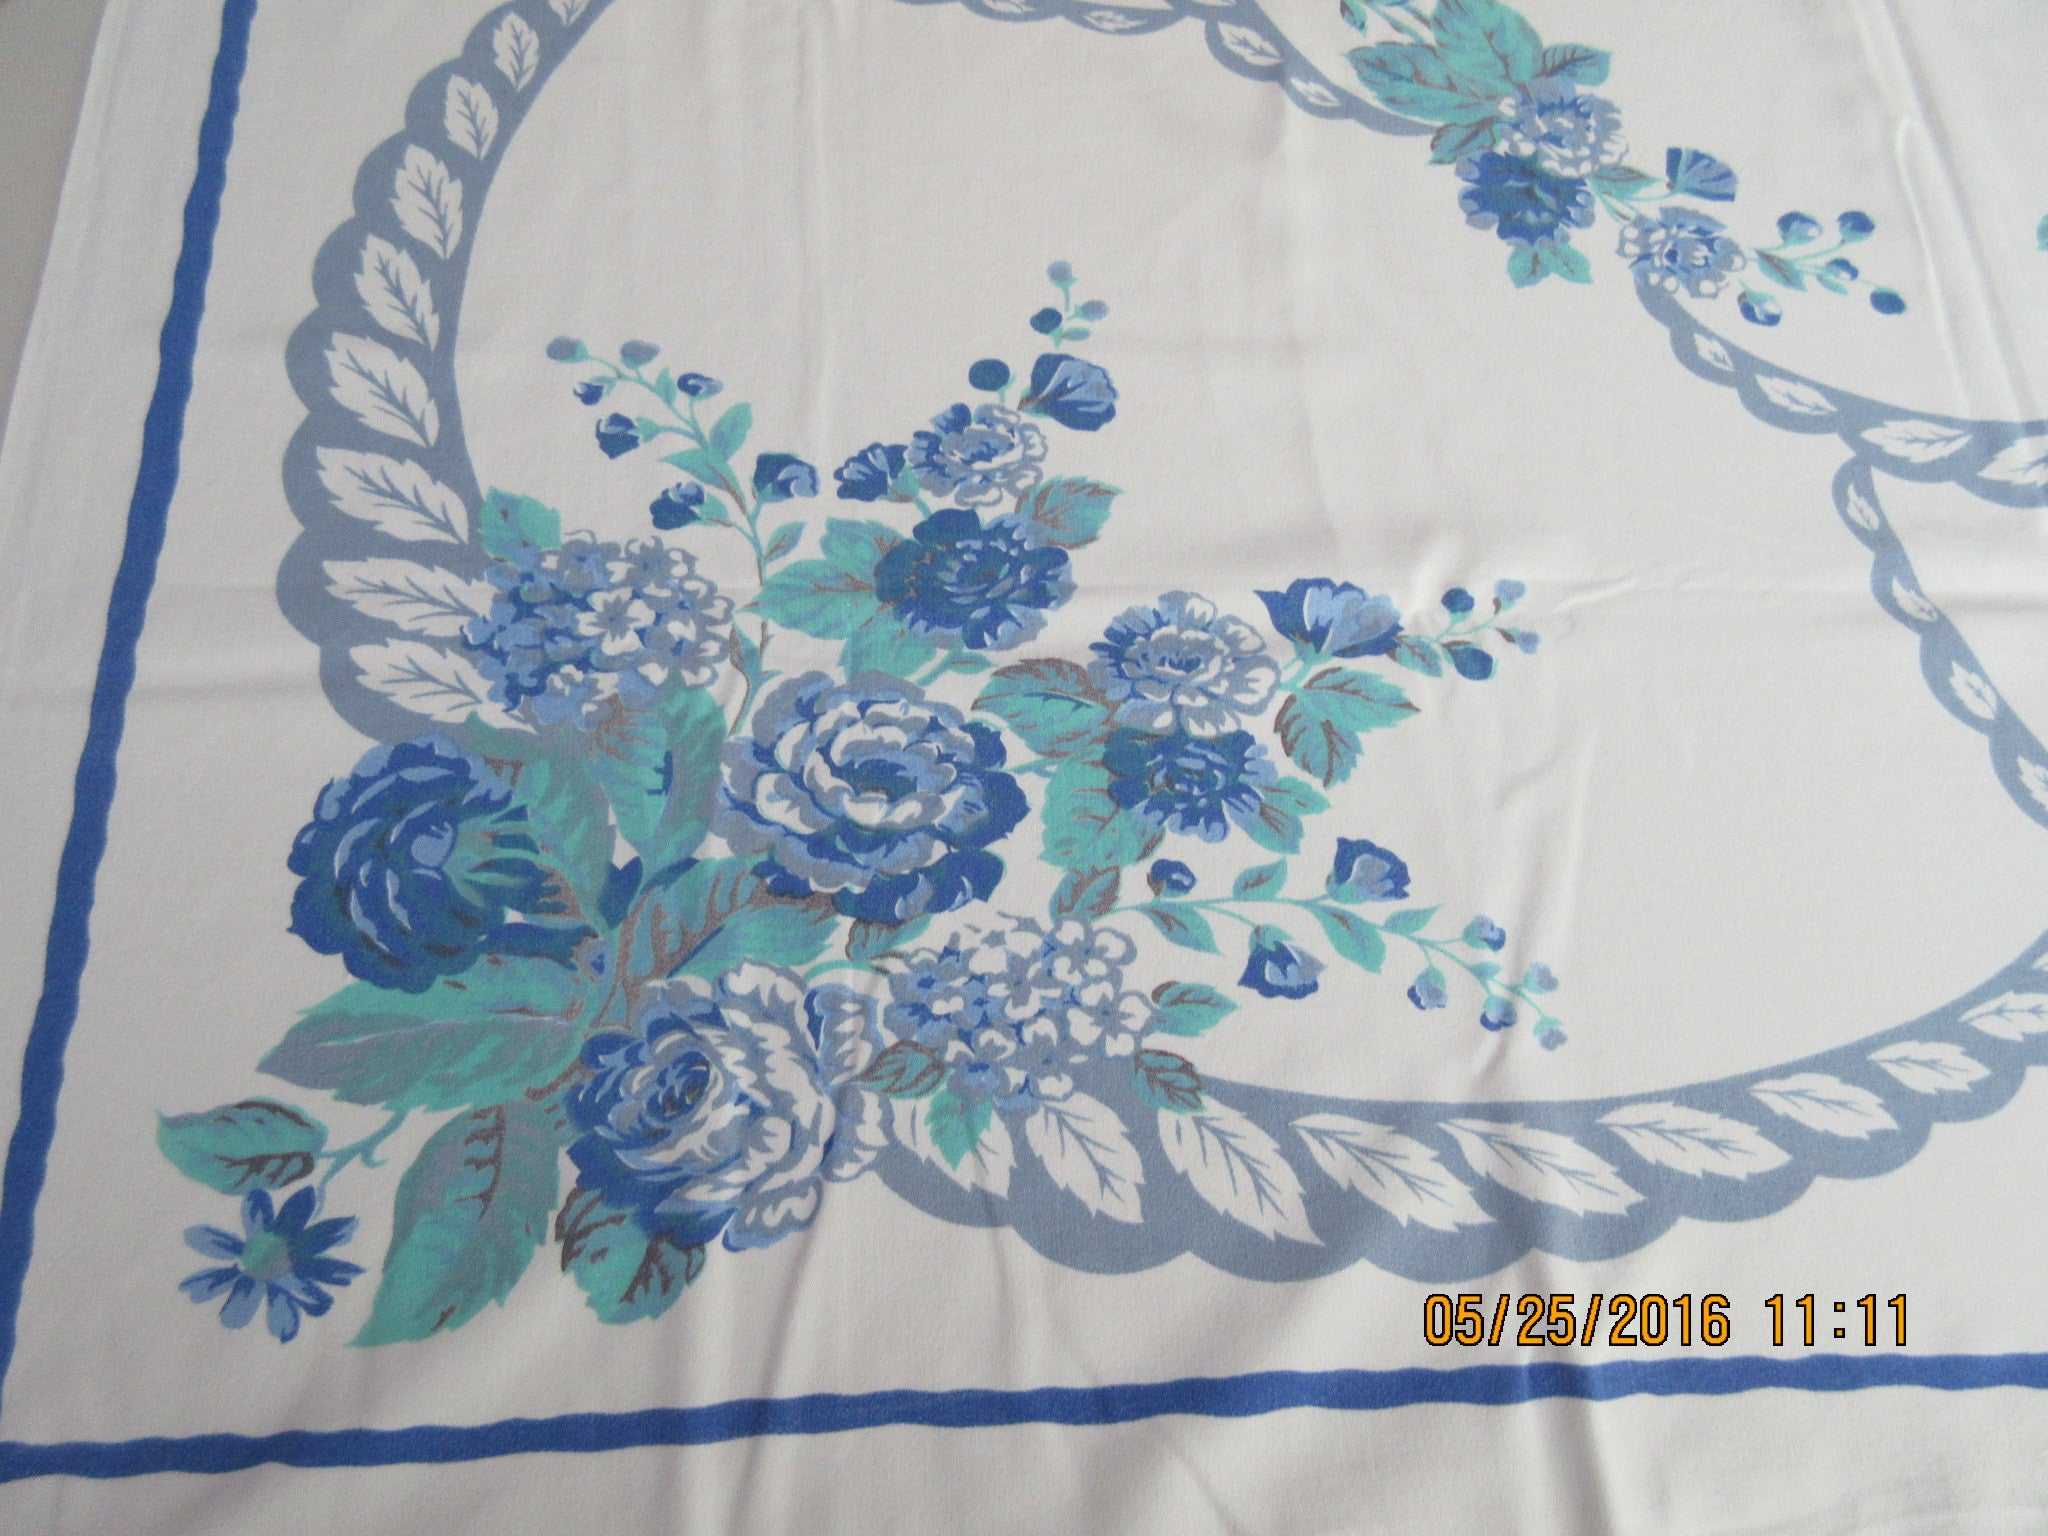 Soft Blue Green Roses on Blue Floral Vintage Printed Tablecloth (51 X 45)